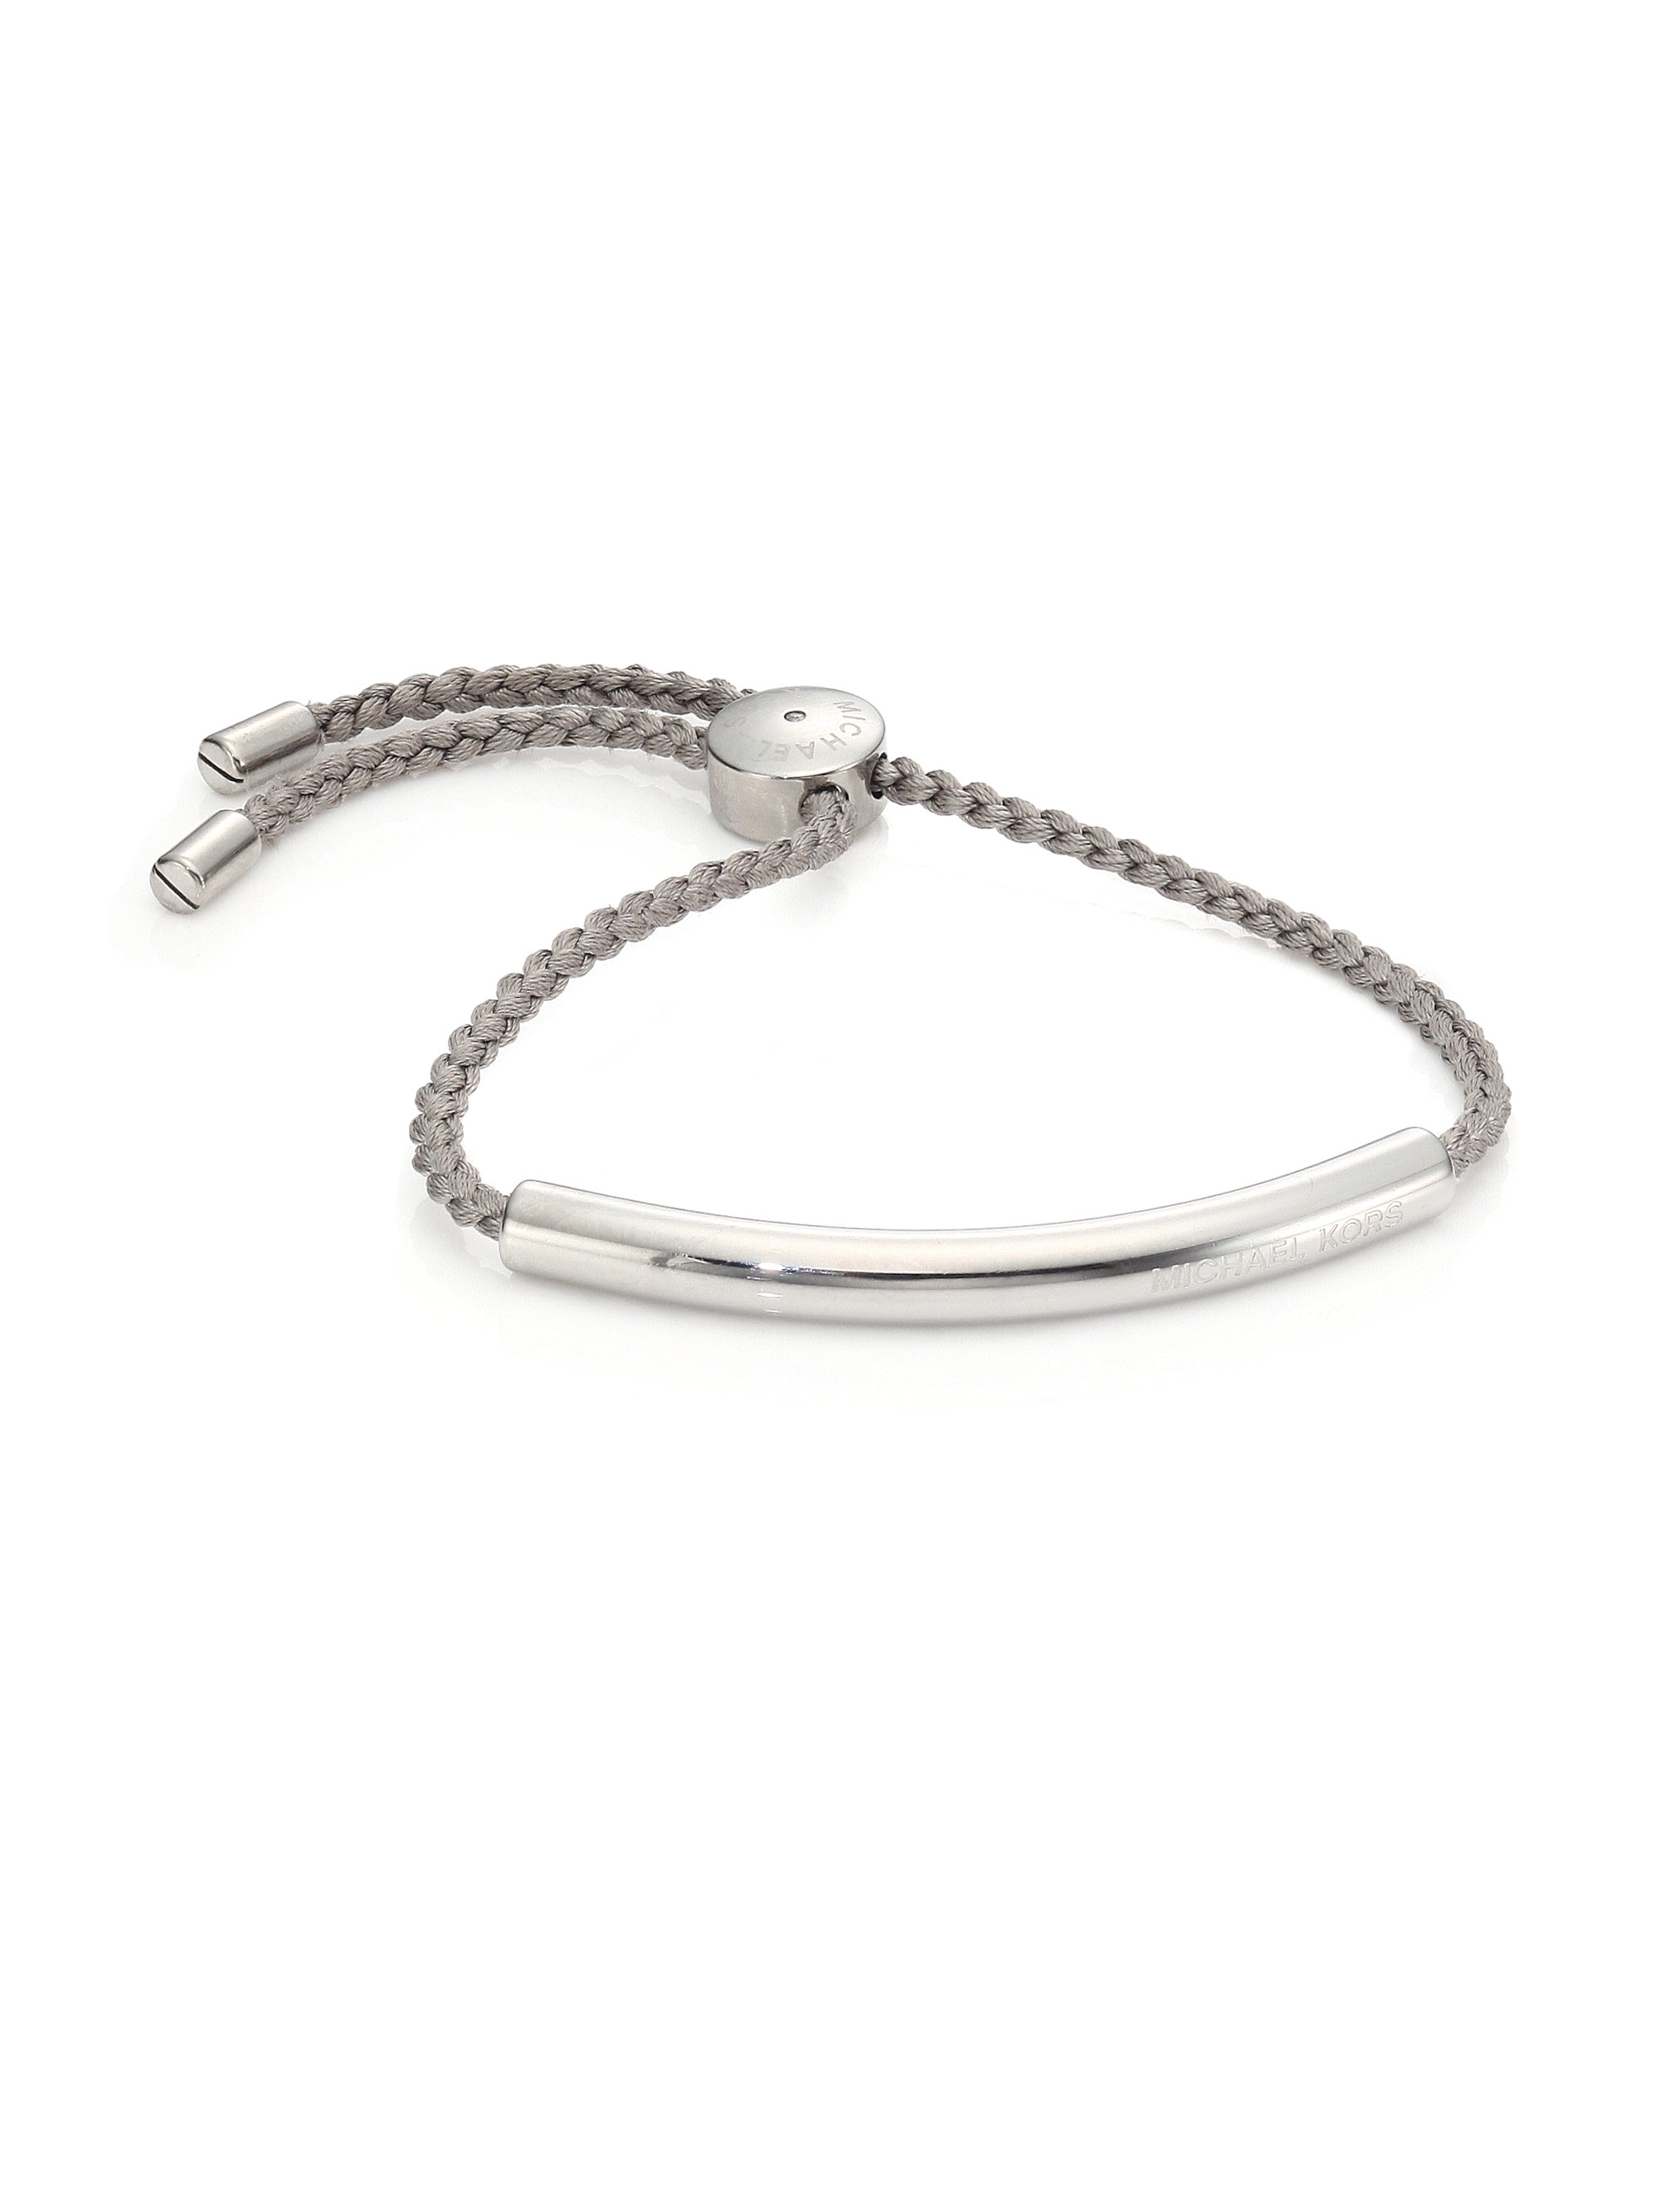 jewellery plated rhodium bead silver slider sterling bracelet